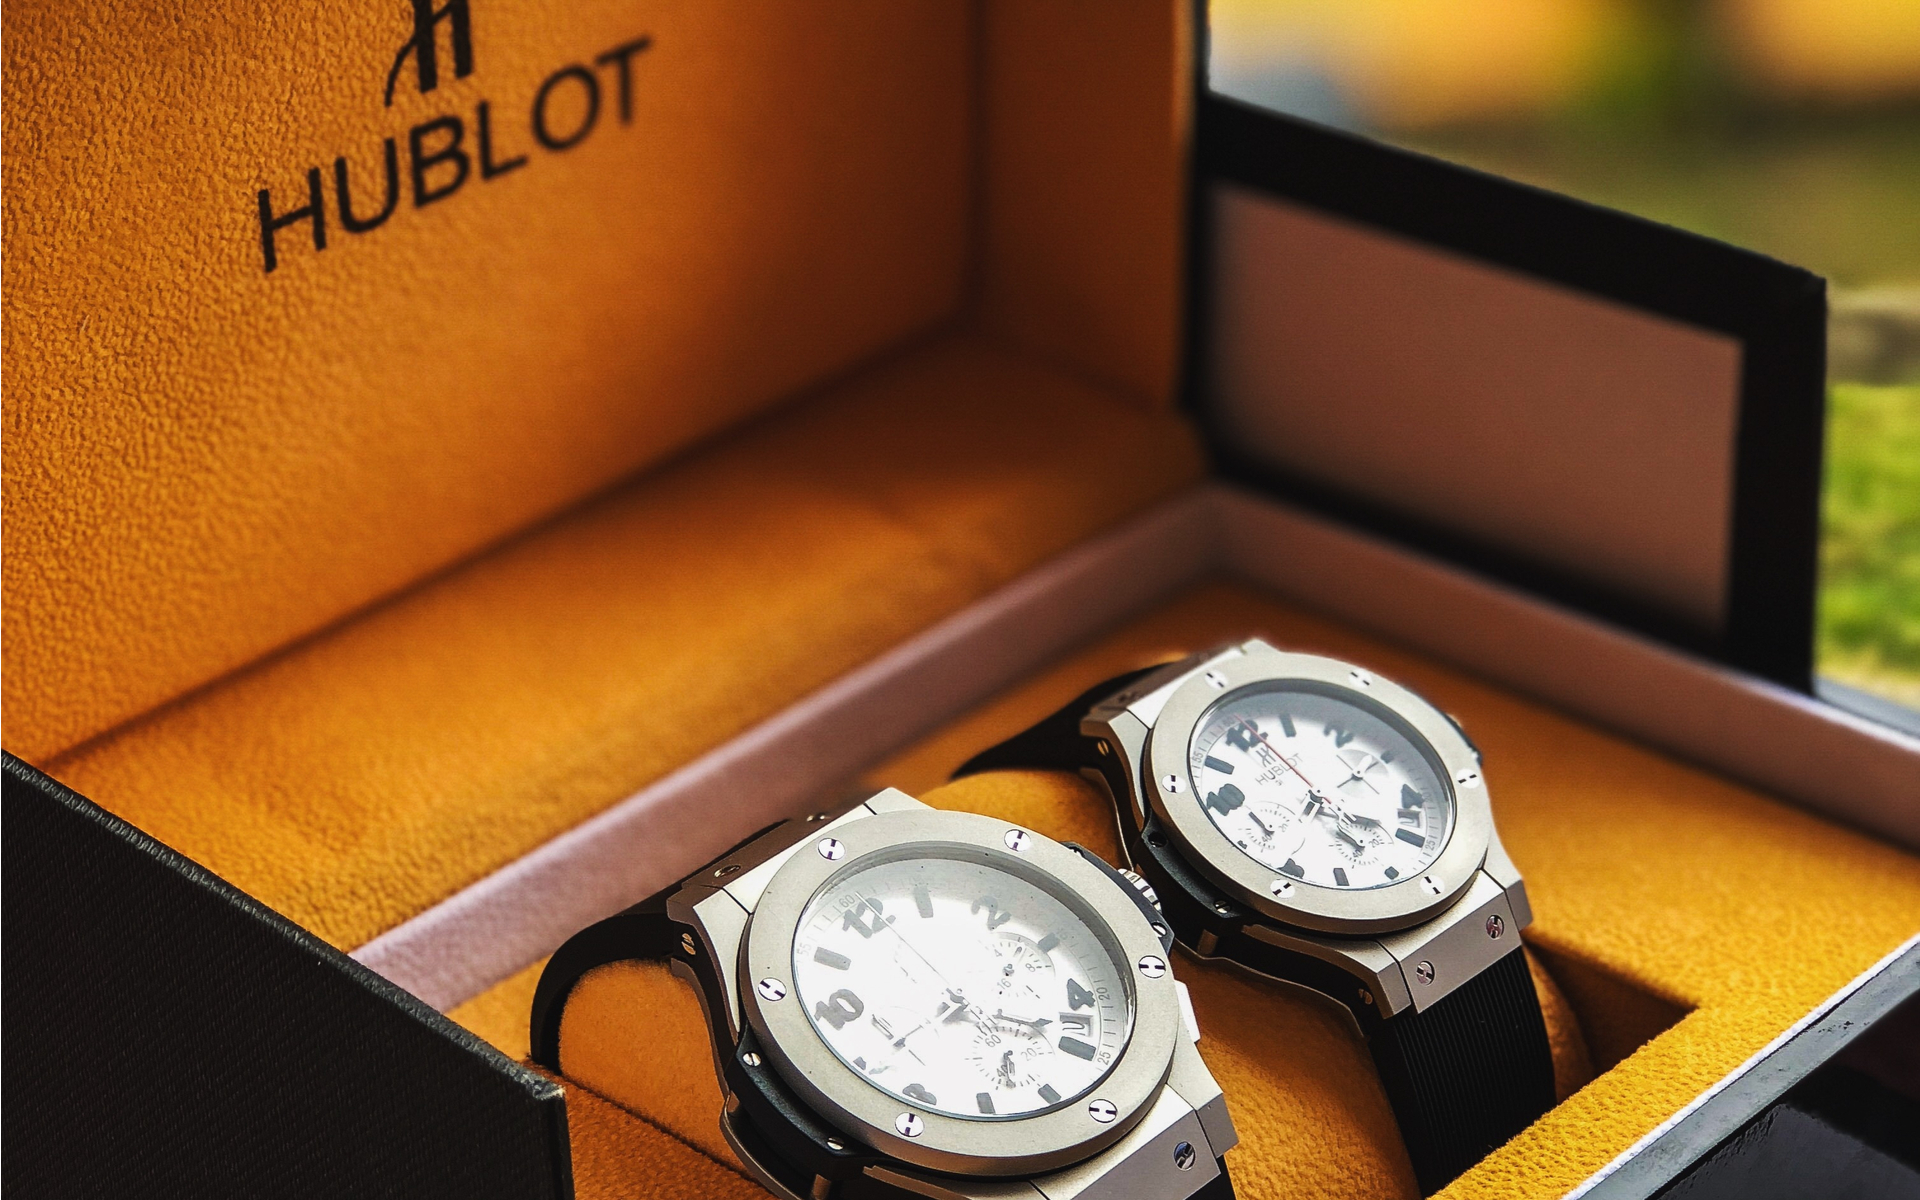 Uhr Hublot New 25 000 Hublot Blockchain Watch Buyable Only With Bitcoin